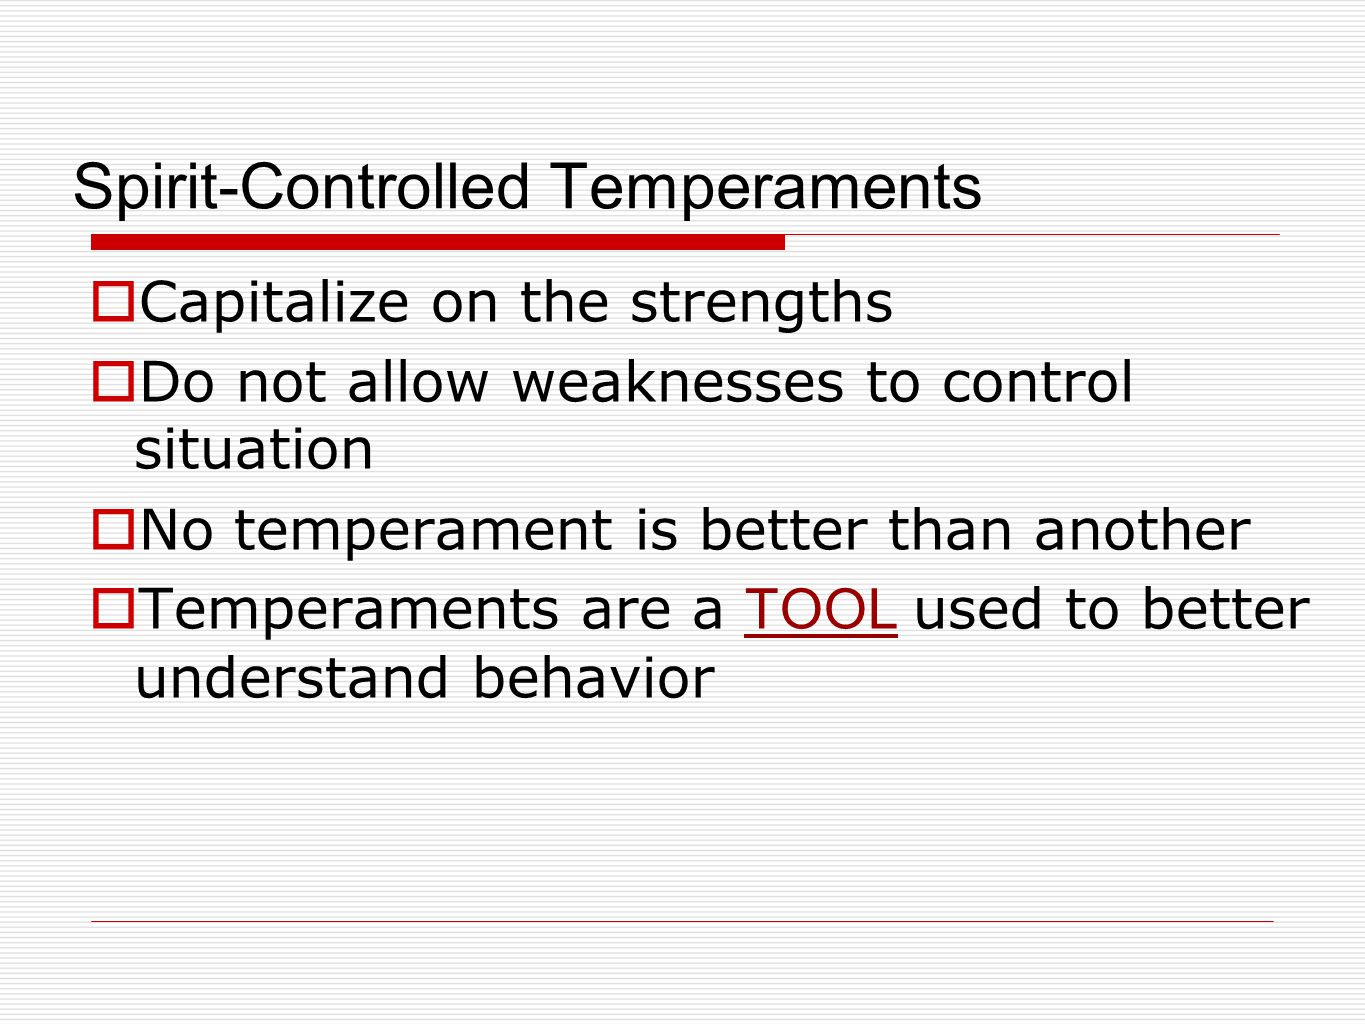 Spirit-Controlled Temperaments  Capitalize on the strengths  Do not allow weaknesses to control situation  No temperament is better than another  Temperaments are a TOOL used to better understand behavior